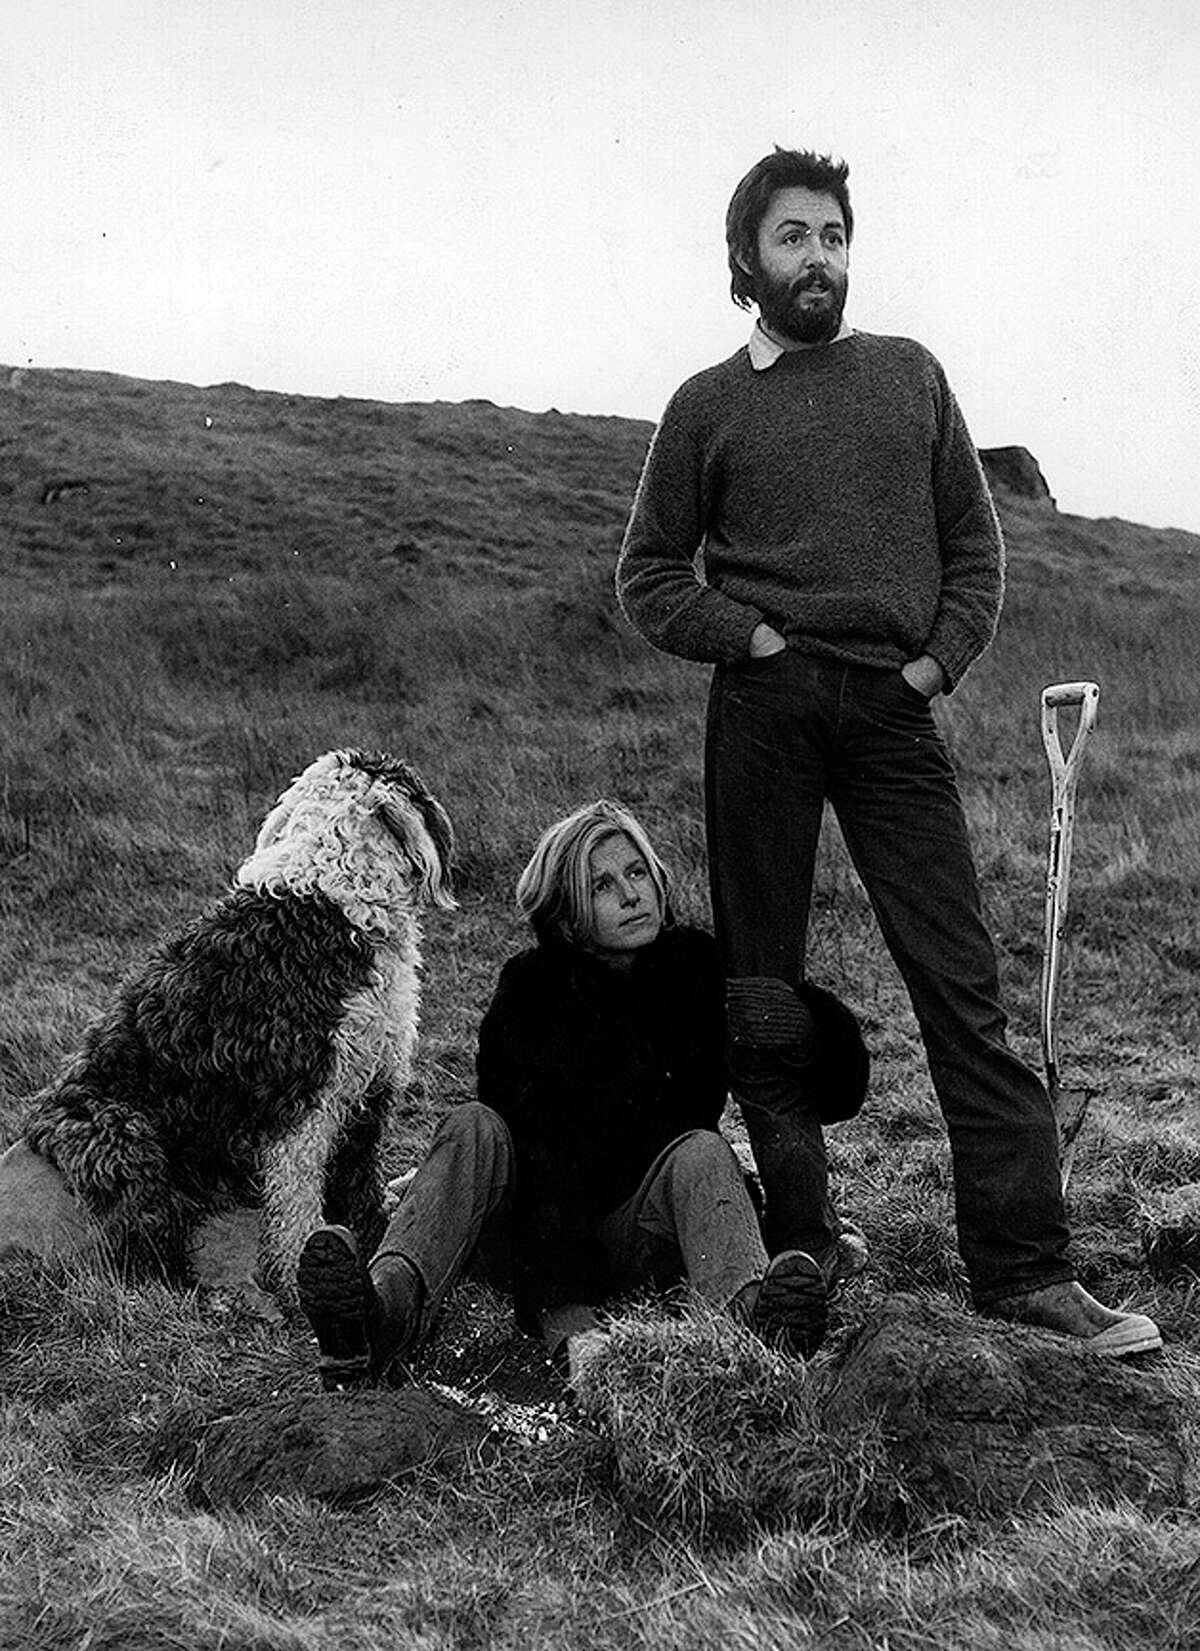 5th January 1970: Paul and Linda McCartney (1941 - 1998) on their lonely farm near the fishing town of Campbeltown, the day after McCartney started High Court proceedings to seal the final break-up of the Beatles. Mirror Syndication International